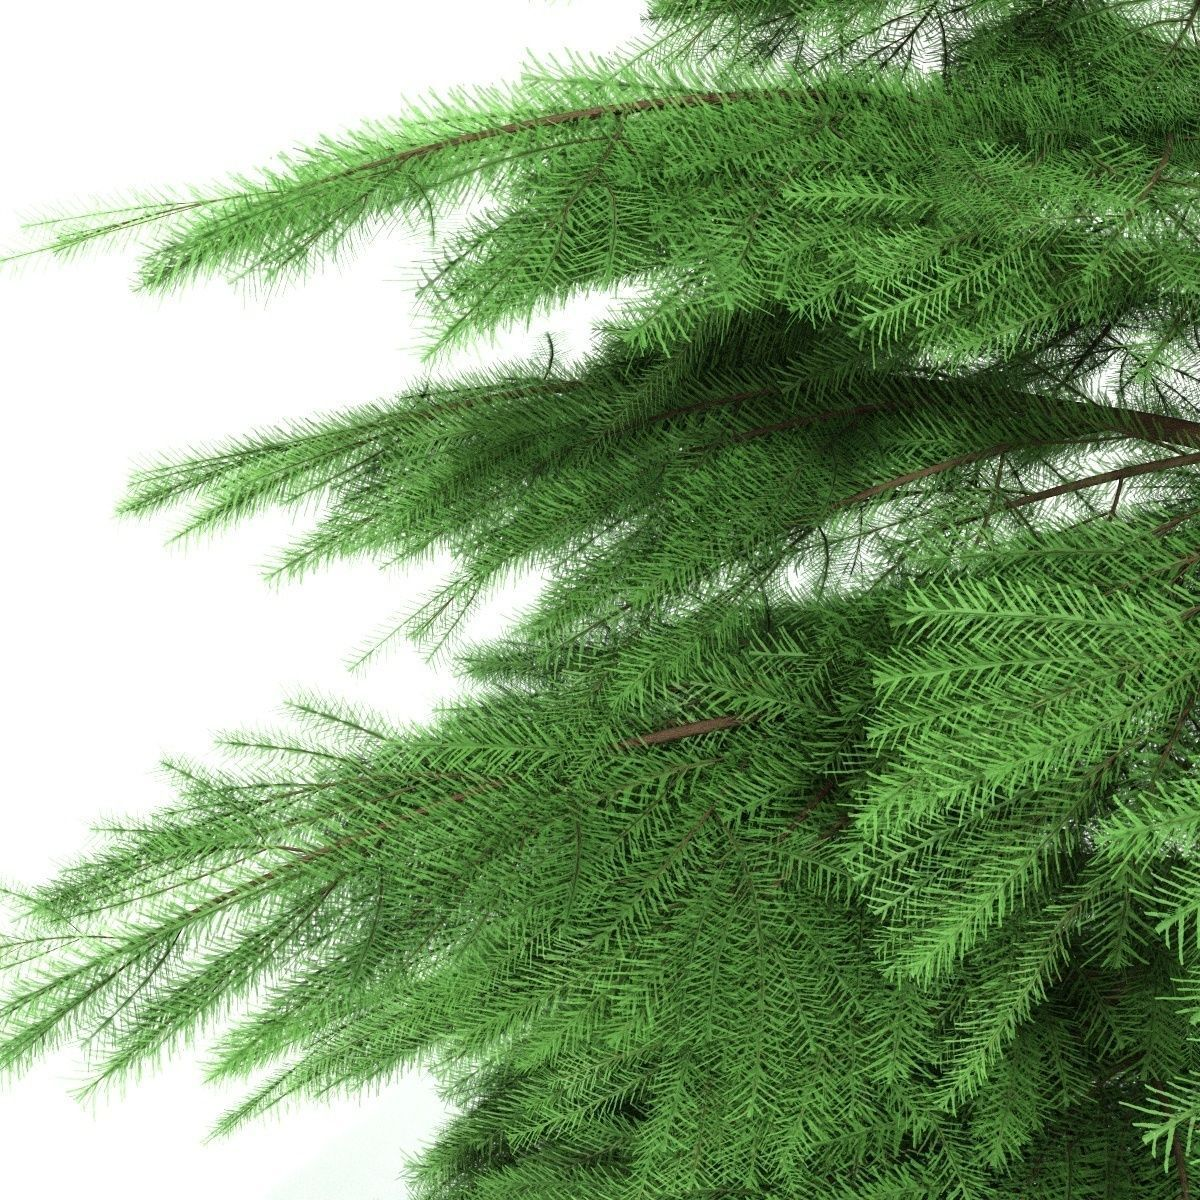 fir tree animation of growth 3d model cgtrader